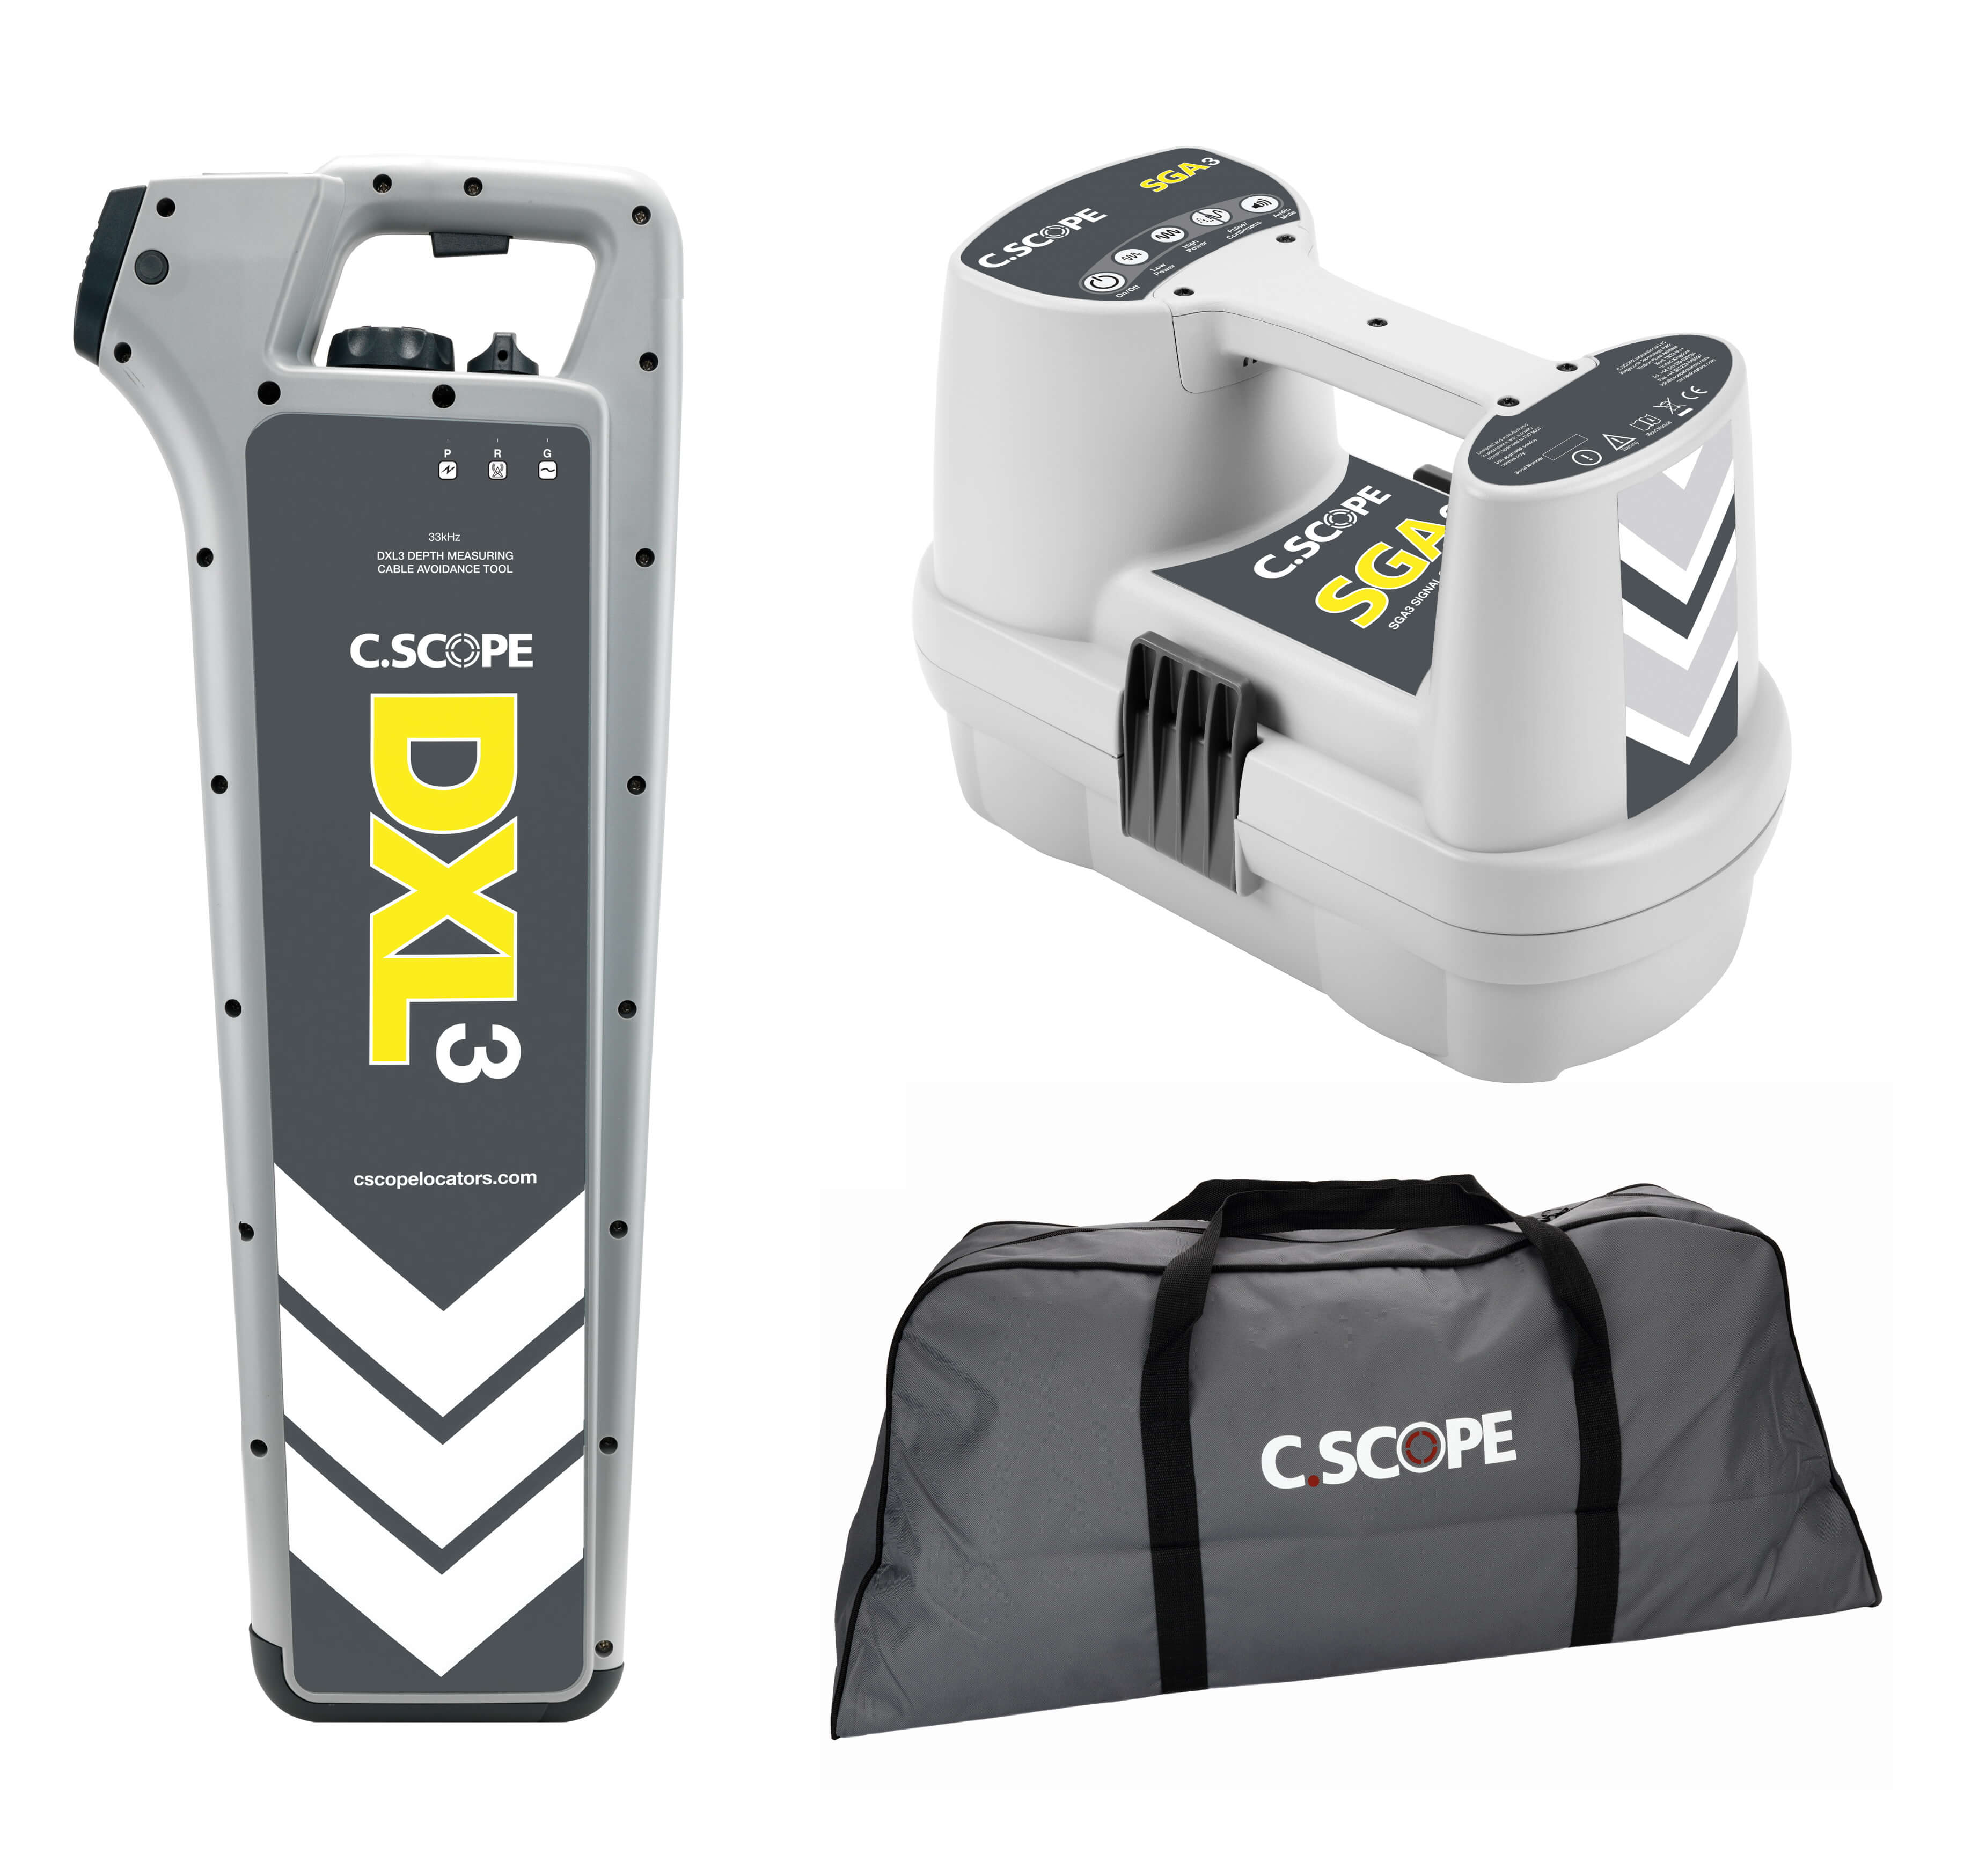 Great Value C.Scope DXL3 Cable Detector Kit - comprises of DXL3 Depth Enabled Cable Detector, SGA3 Signal Generator and soft carry bag